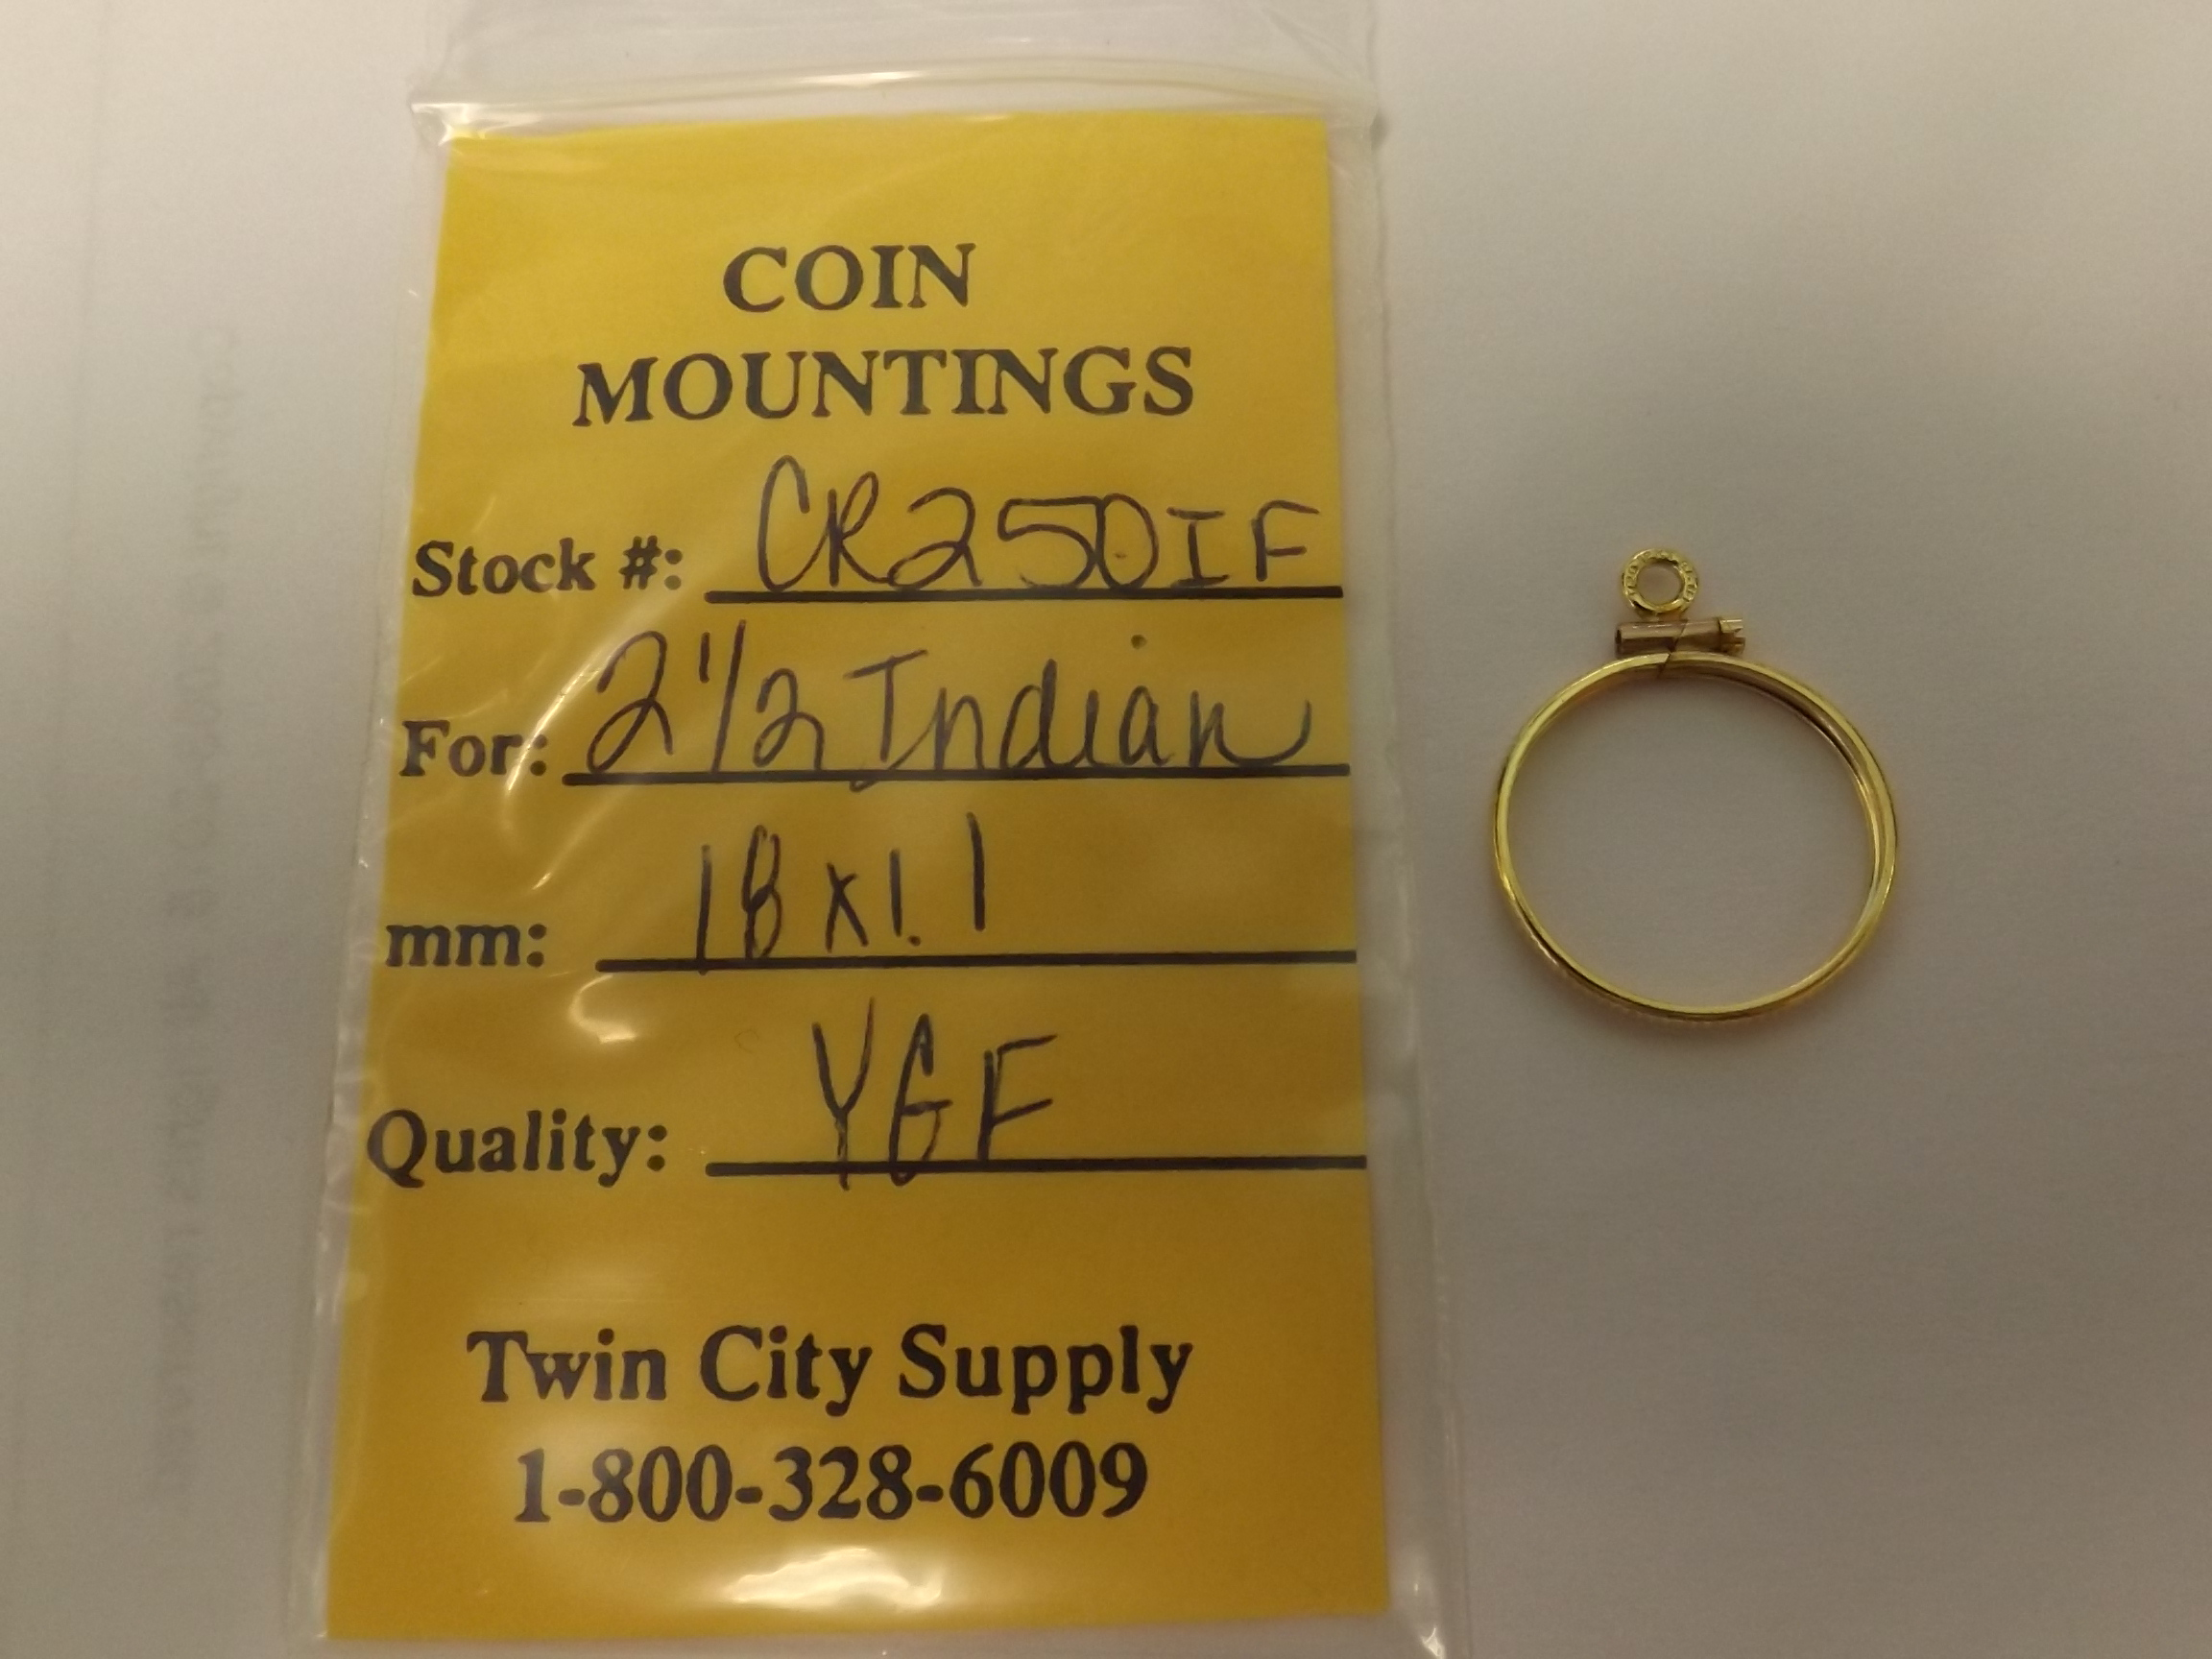 CR250IF American Coin Mounting--$2.50 Indian-Yellow Gold Filled- Closeout!